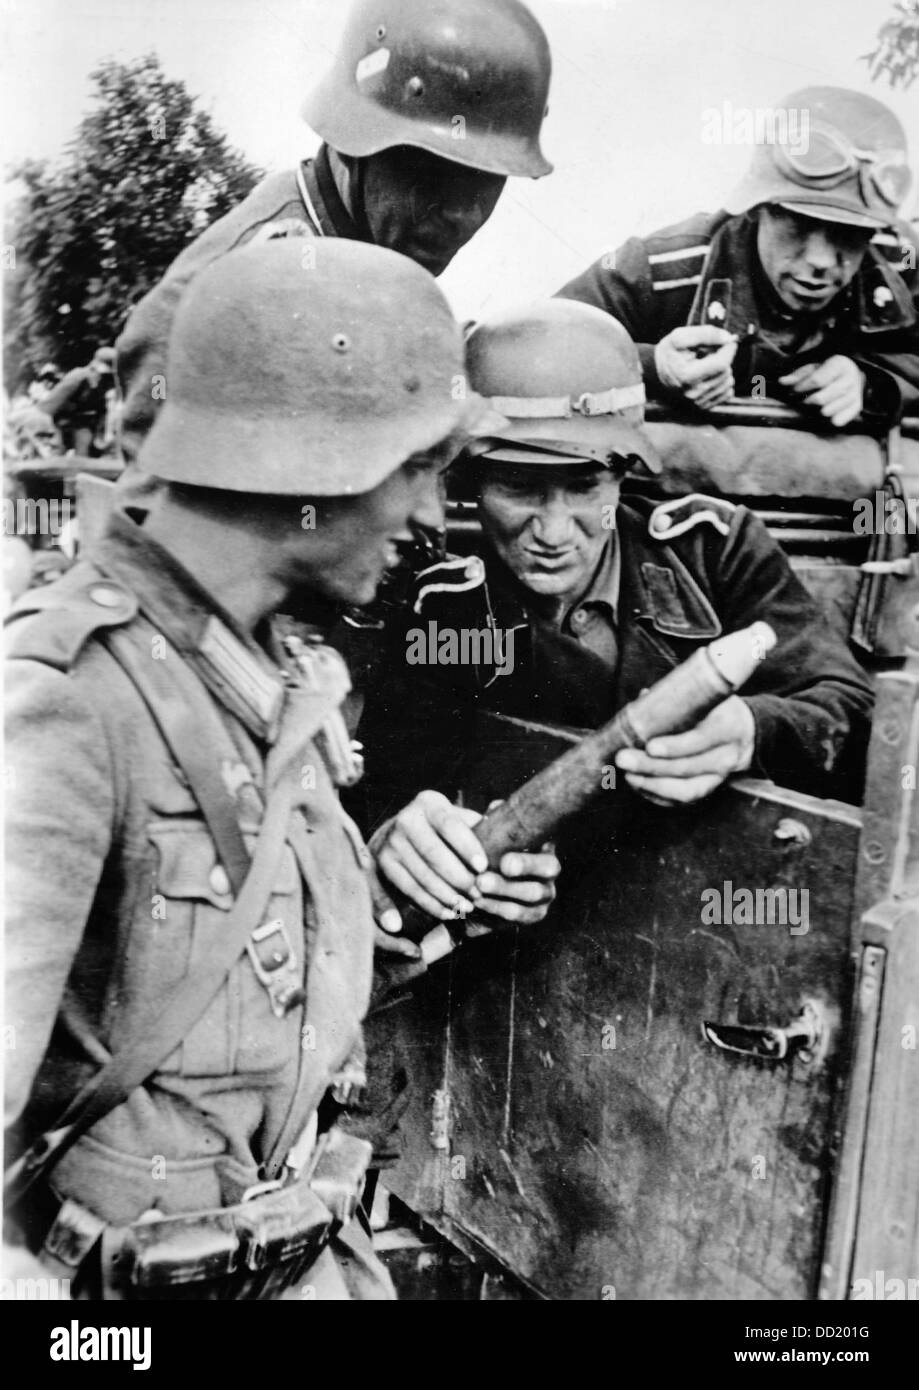 The image from the Nazi Propaganda! shows German members of an antitank unit examining grenades from a captured Stock Photo